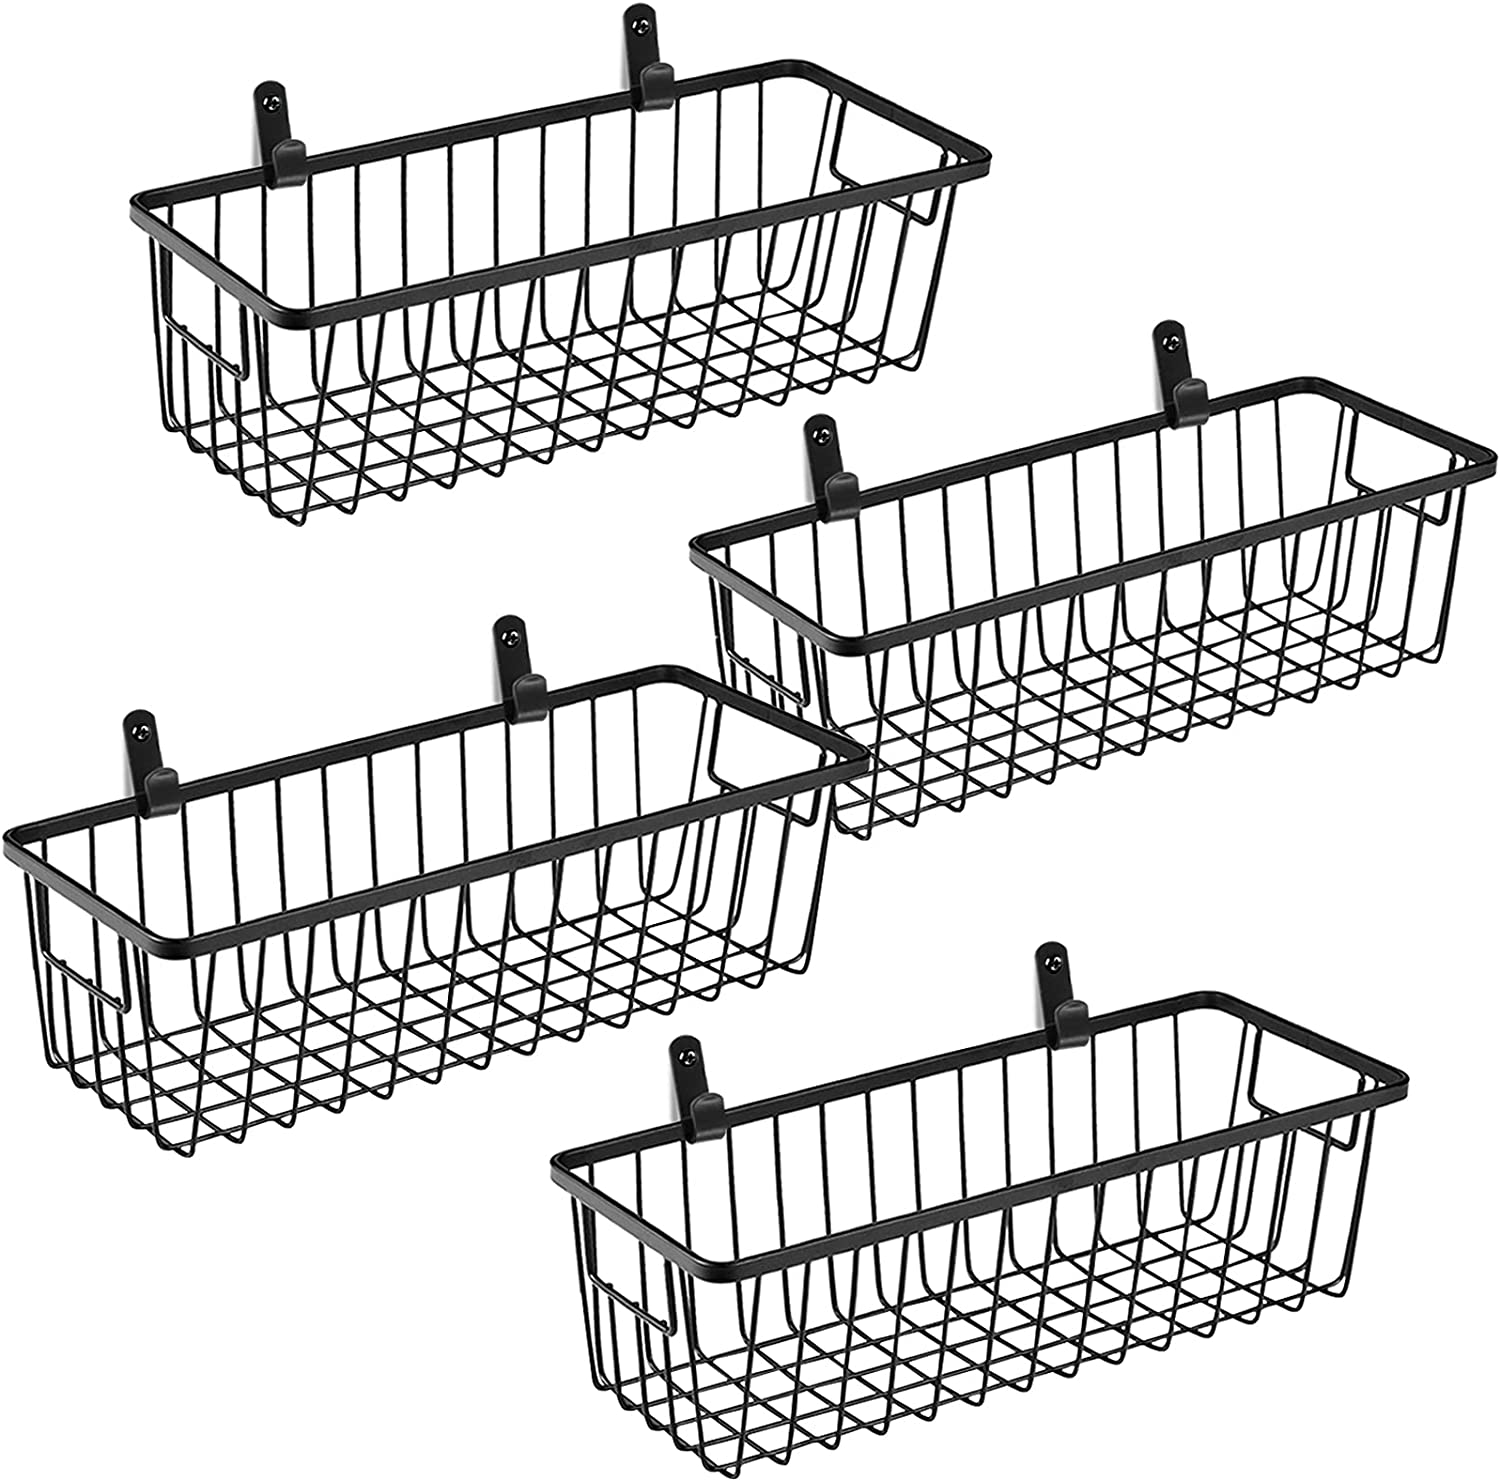 SheeChung Farmhouse Metal Wire Bin Basket with Wall Mount - Small, 4 Pack - Portable Hanging Wall Basket, Rustic Home Storage Organizer for Cabinets,Pantry, Closets, Bathroom, Kitchen,Bedroom(Black)